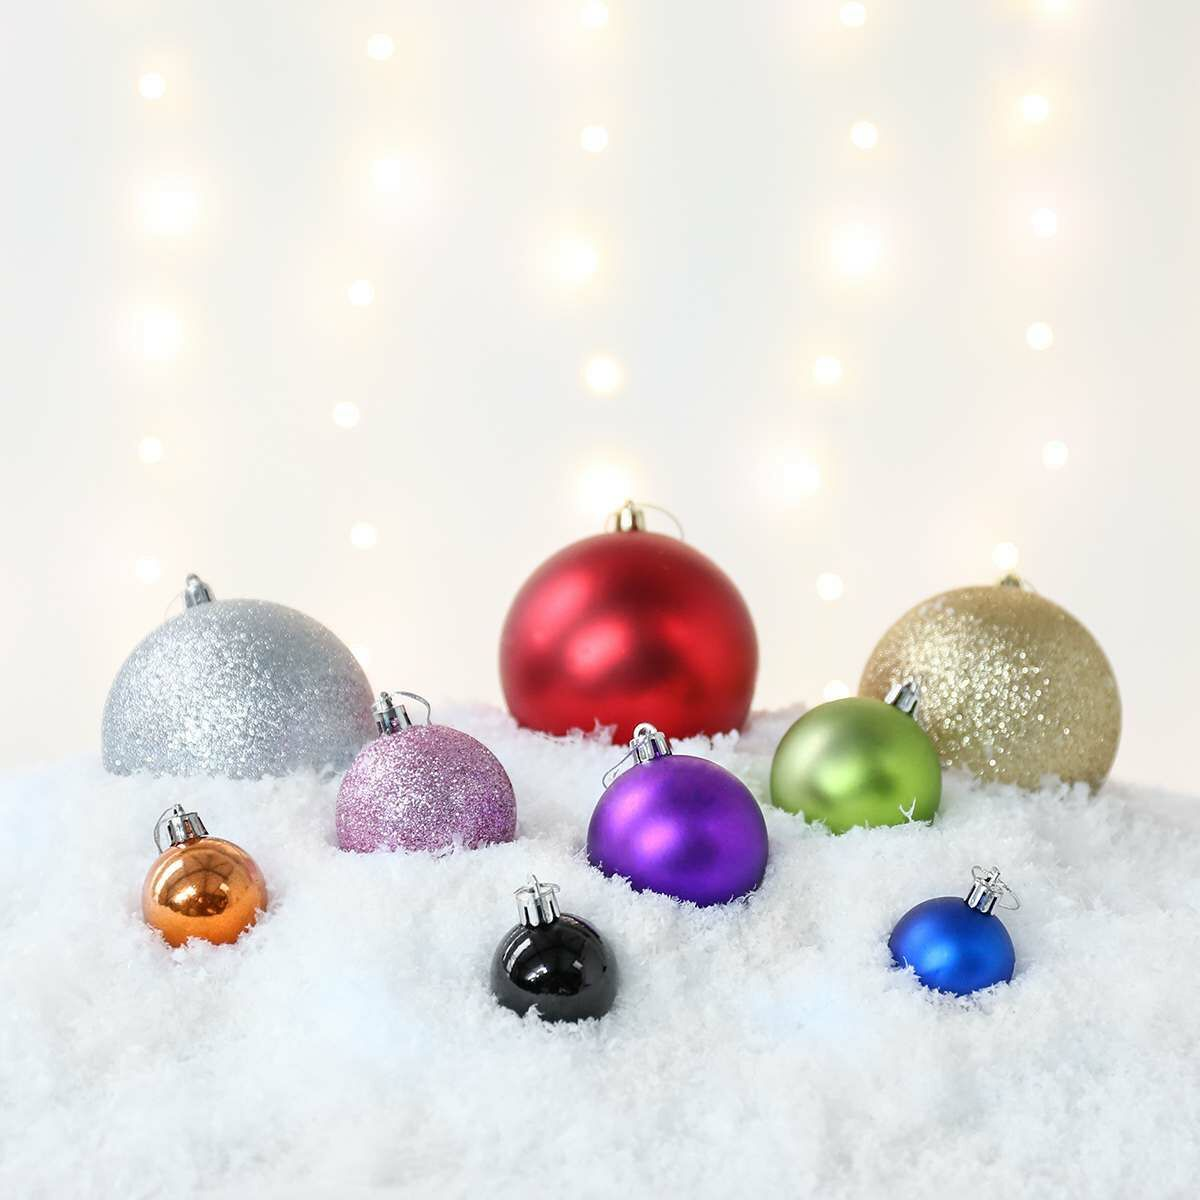 12 x 4cm Assorted Finish Shatterproof Christmas Tree Baubles